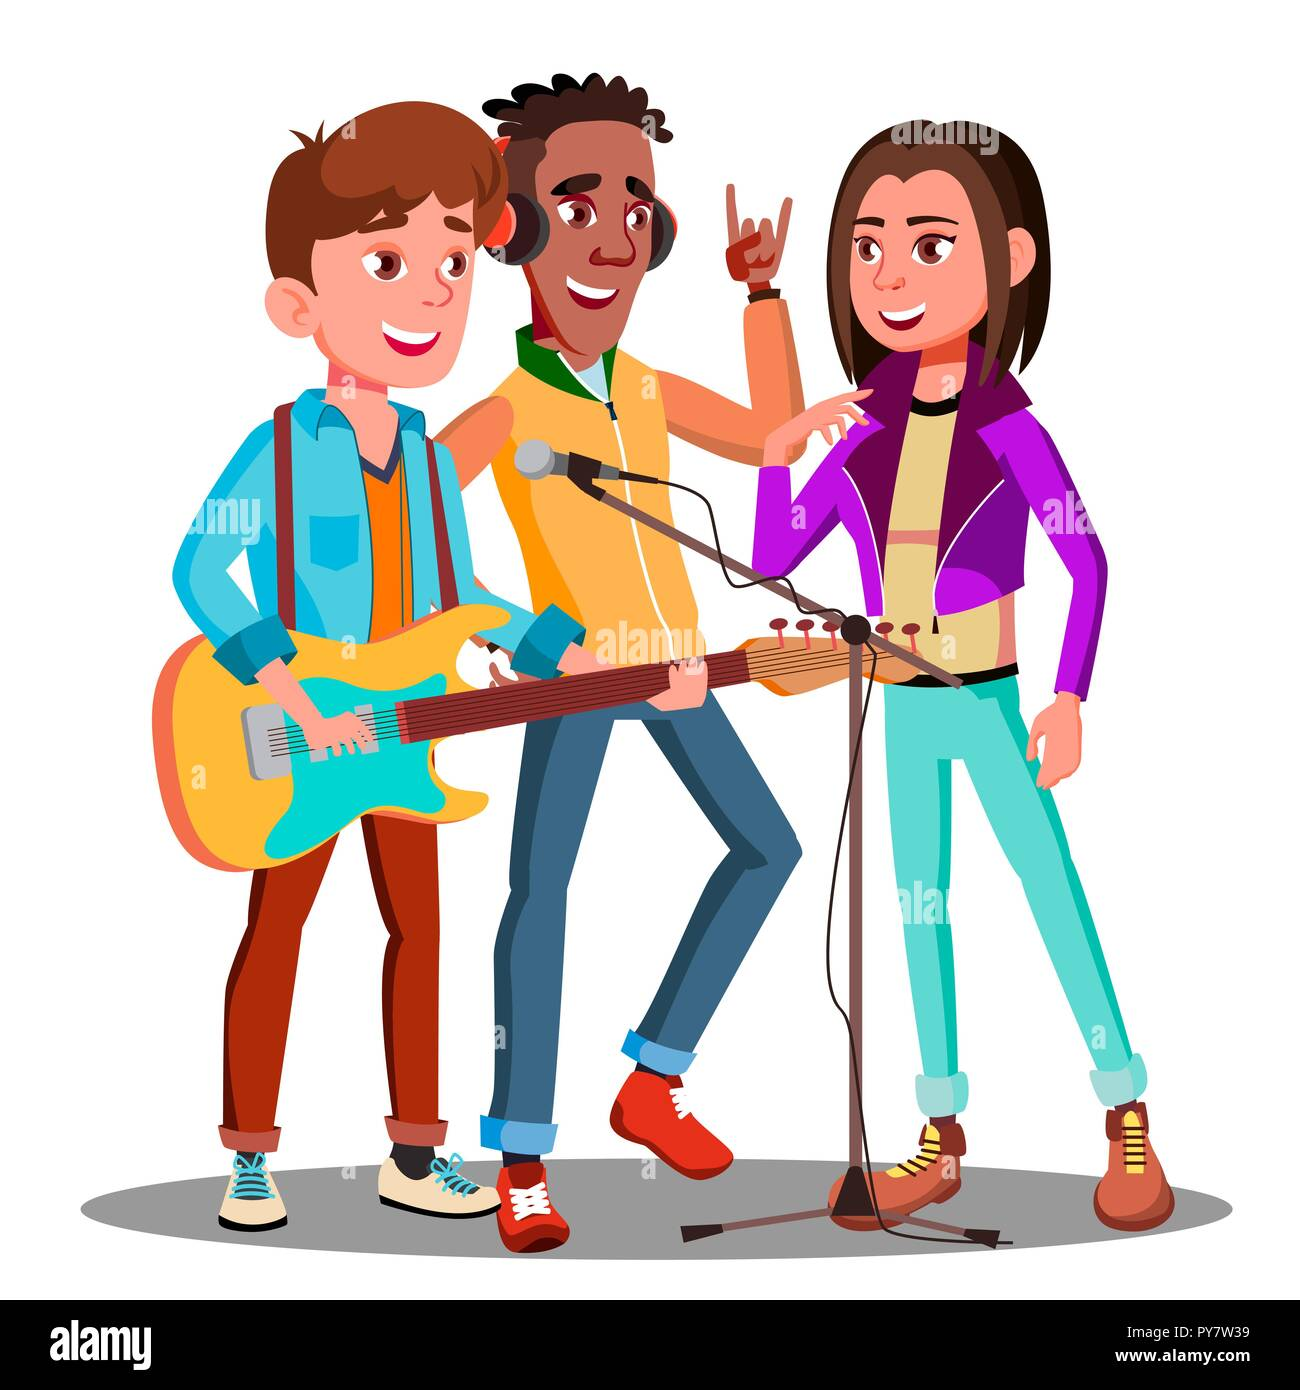 Music Band Cut Out Stock Images & Pictures - Alamy